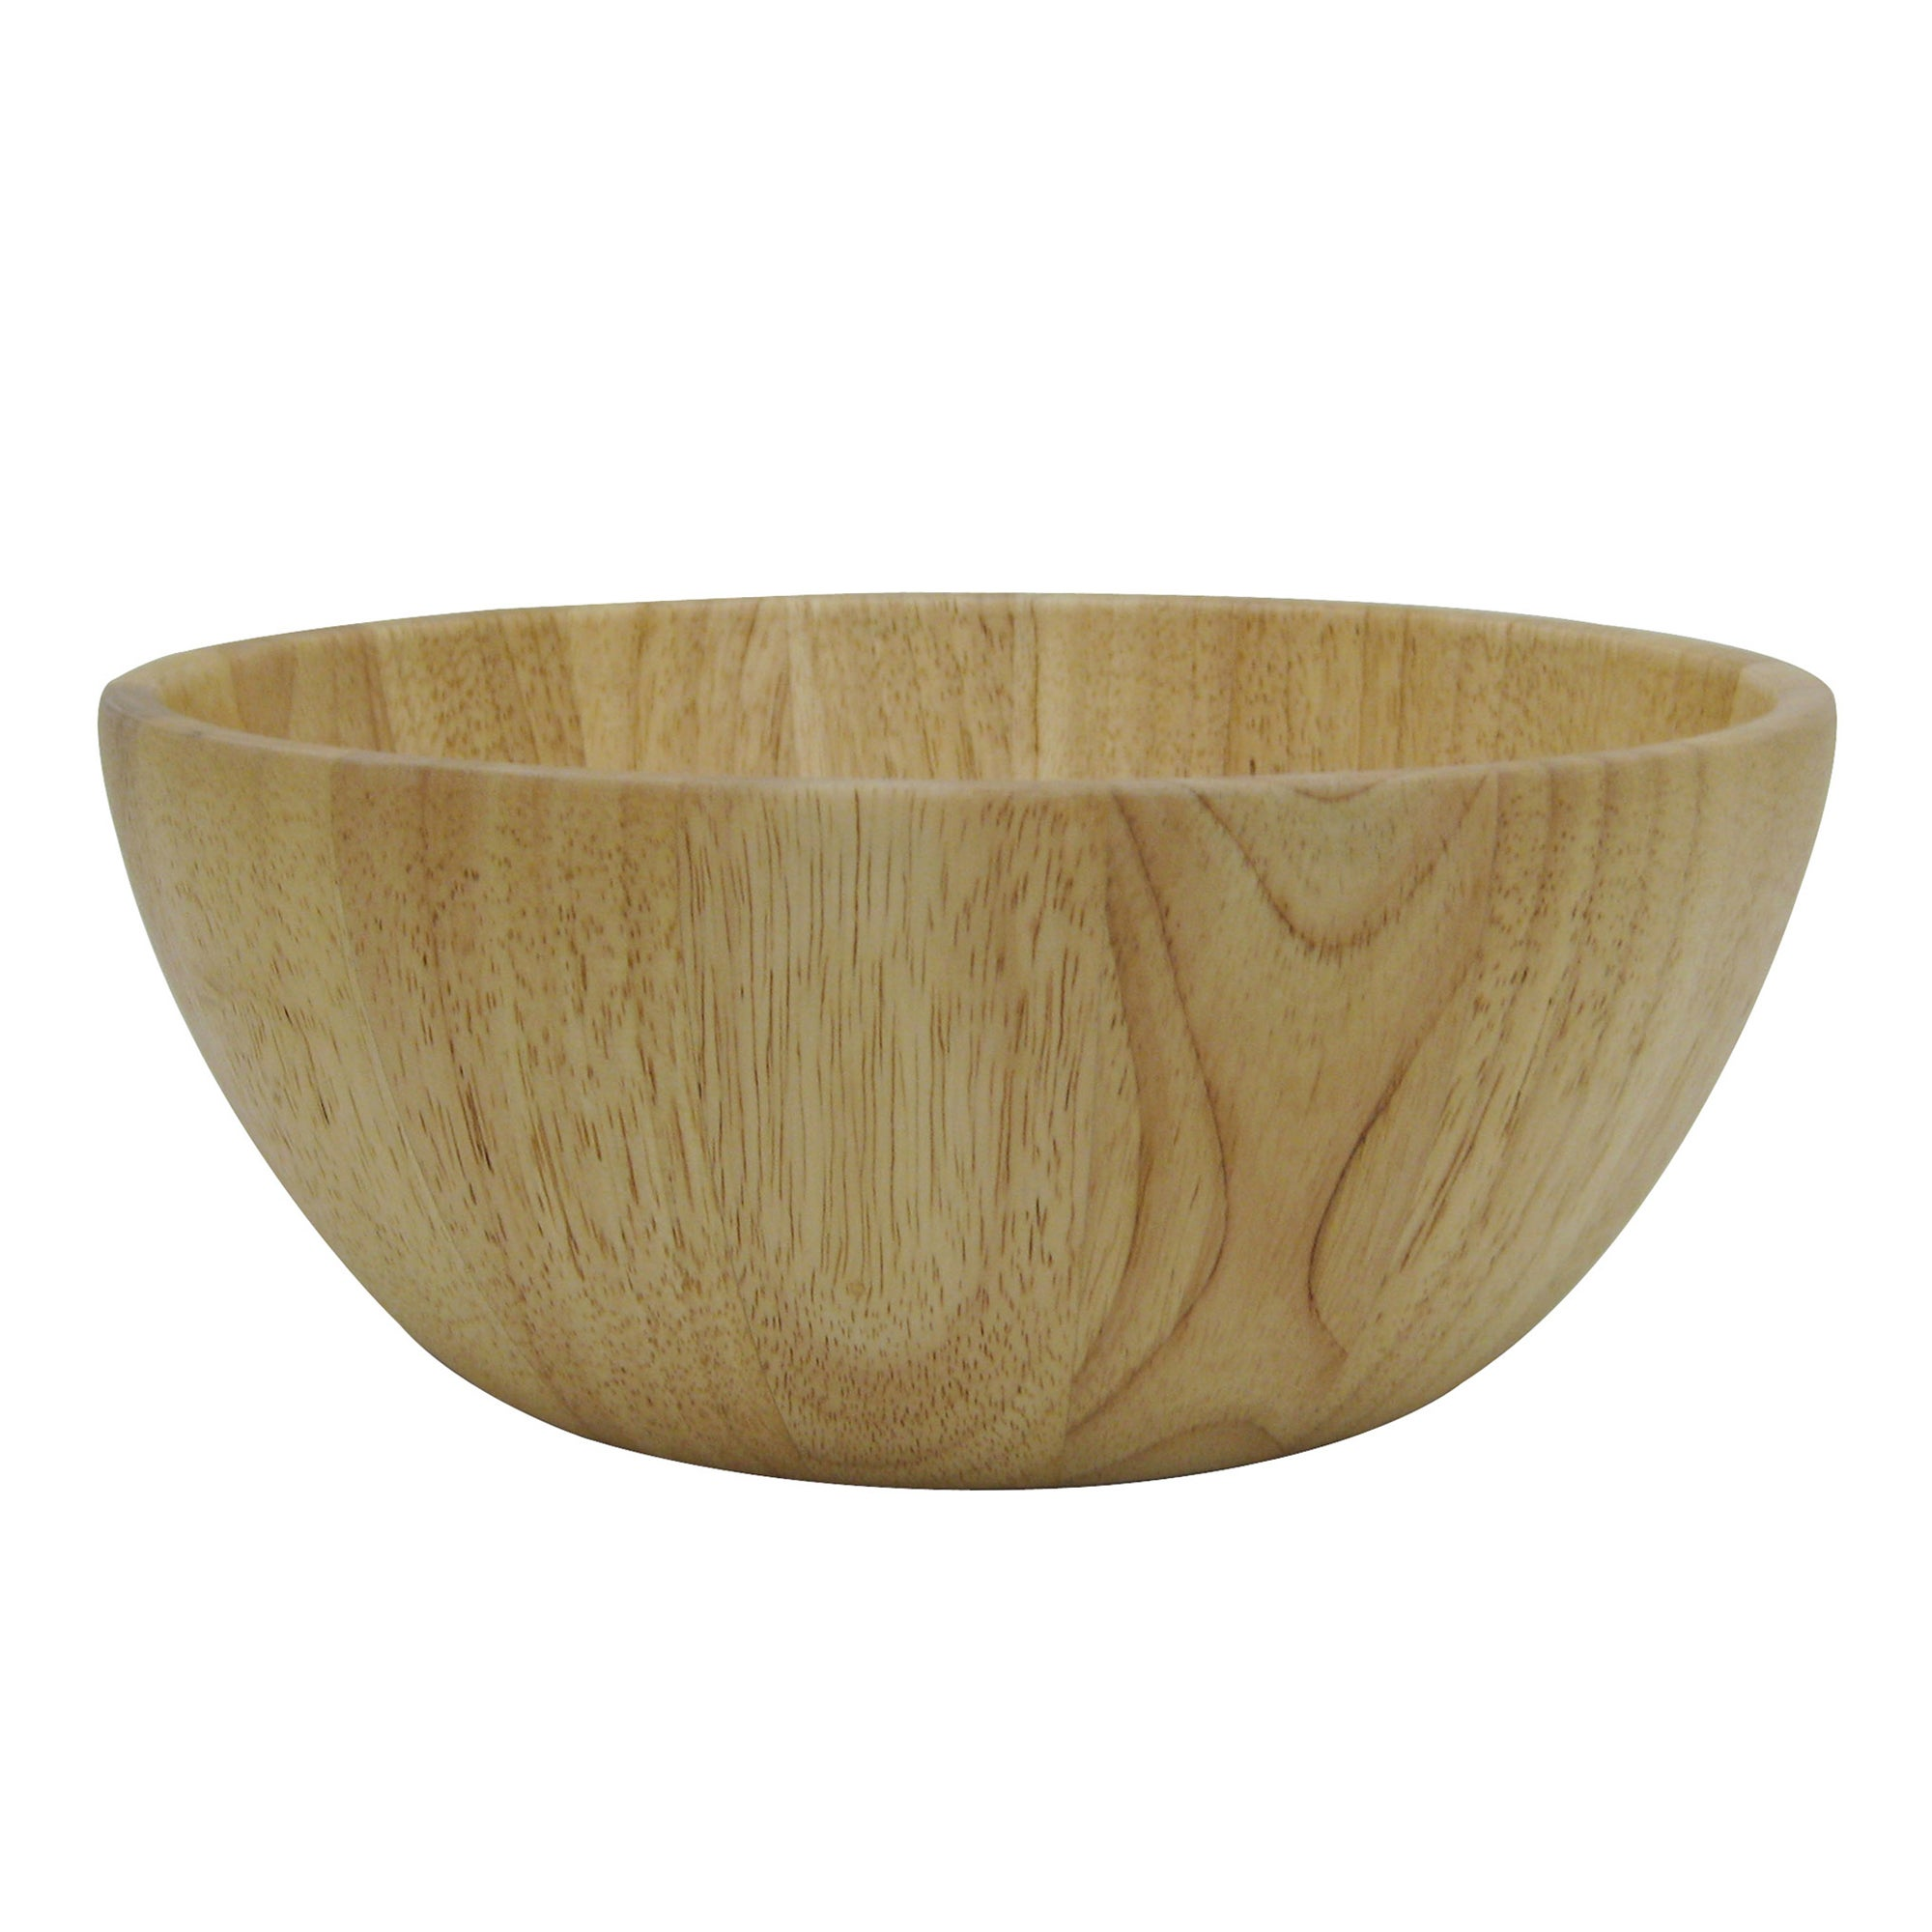 T & G Hevea Large Wood Salad Bowl